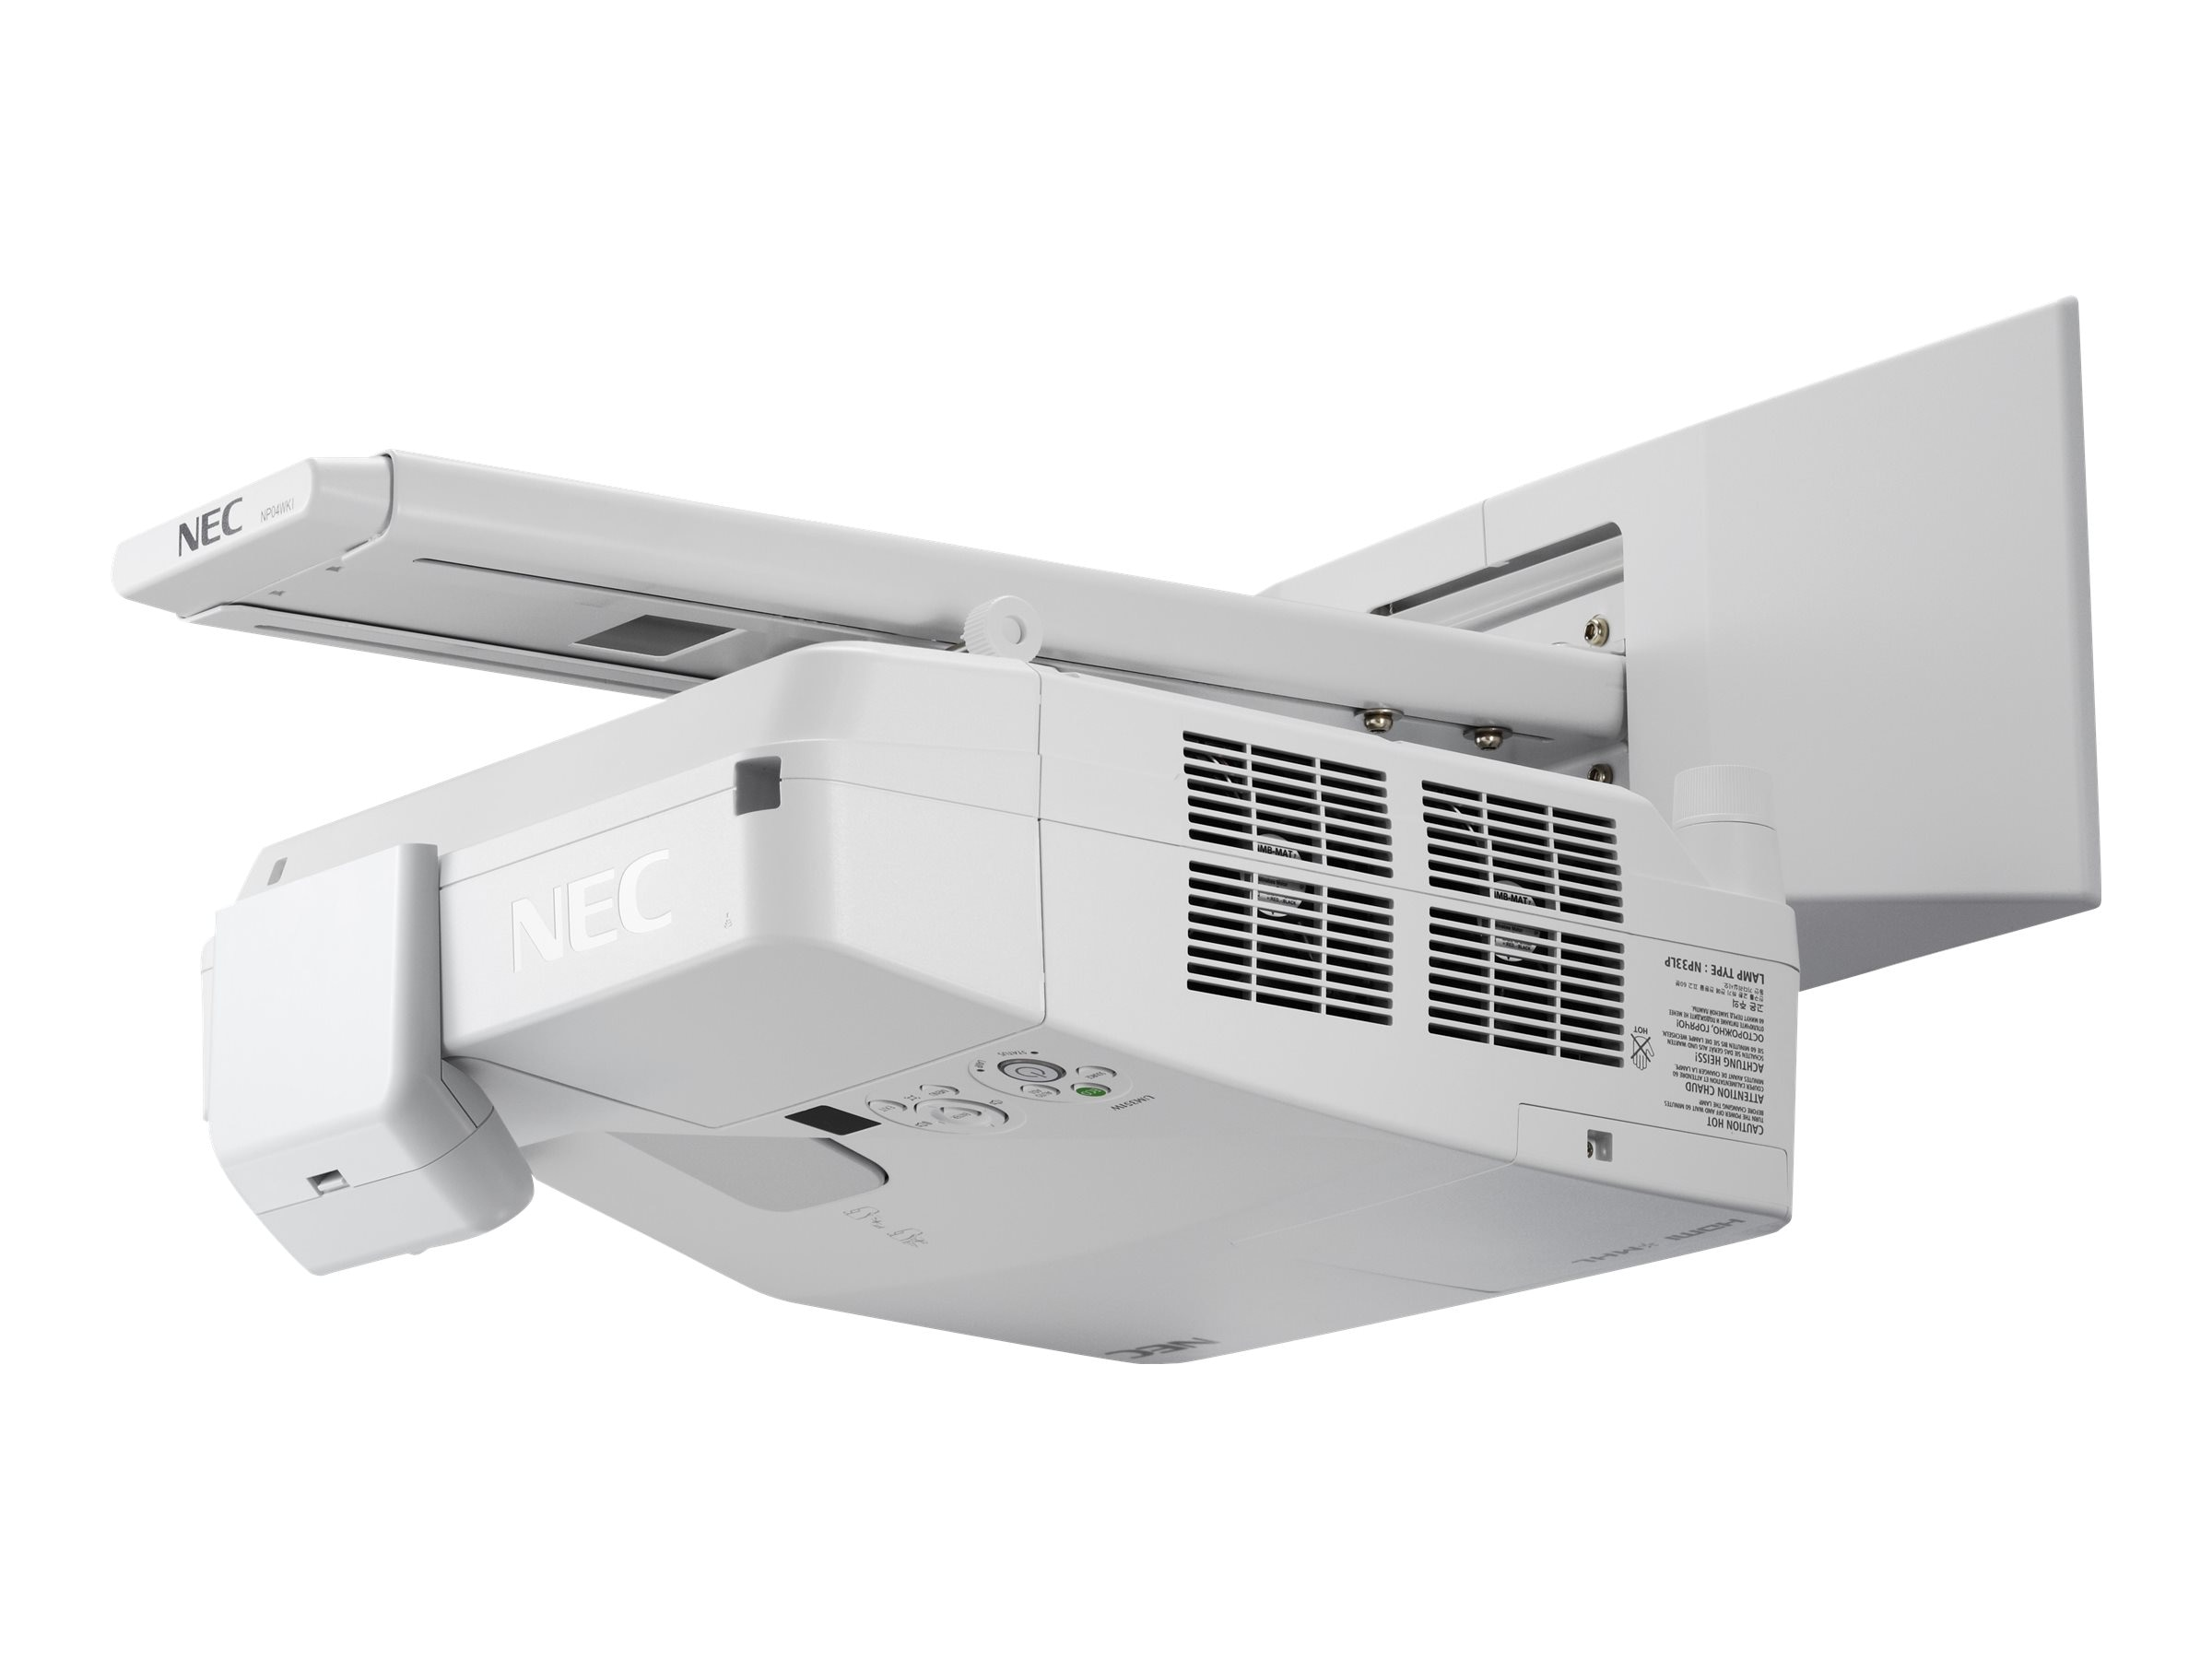 NEC UM361X Ultra Short Throw LCD Projector, 3600 Lumens, White with Wall Mount, NP-UM361X-WK, 18193138, Projectors